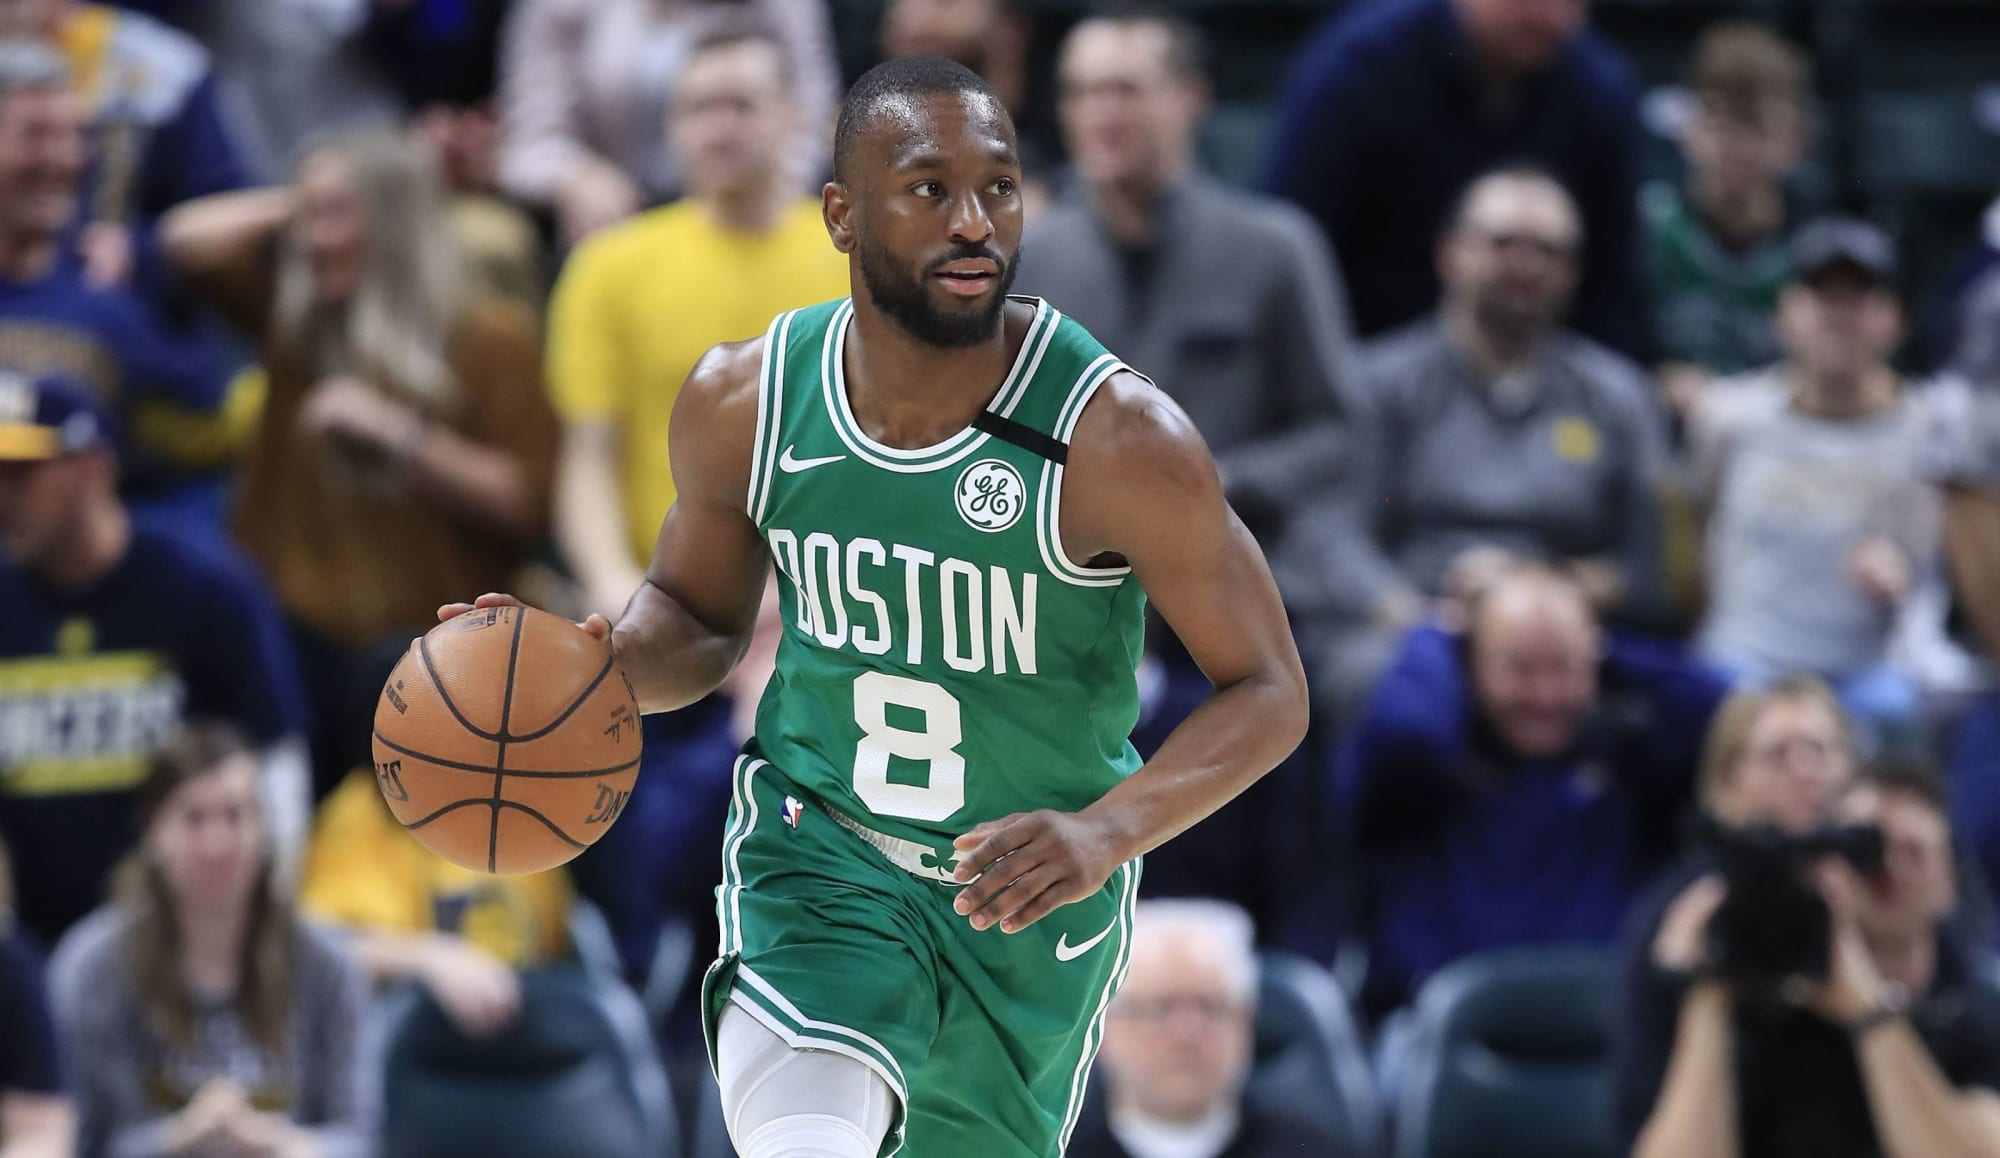 Knicks: Kemba Walker 'seriously' considered NYK before signing with Boston Celtics